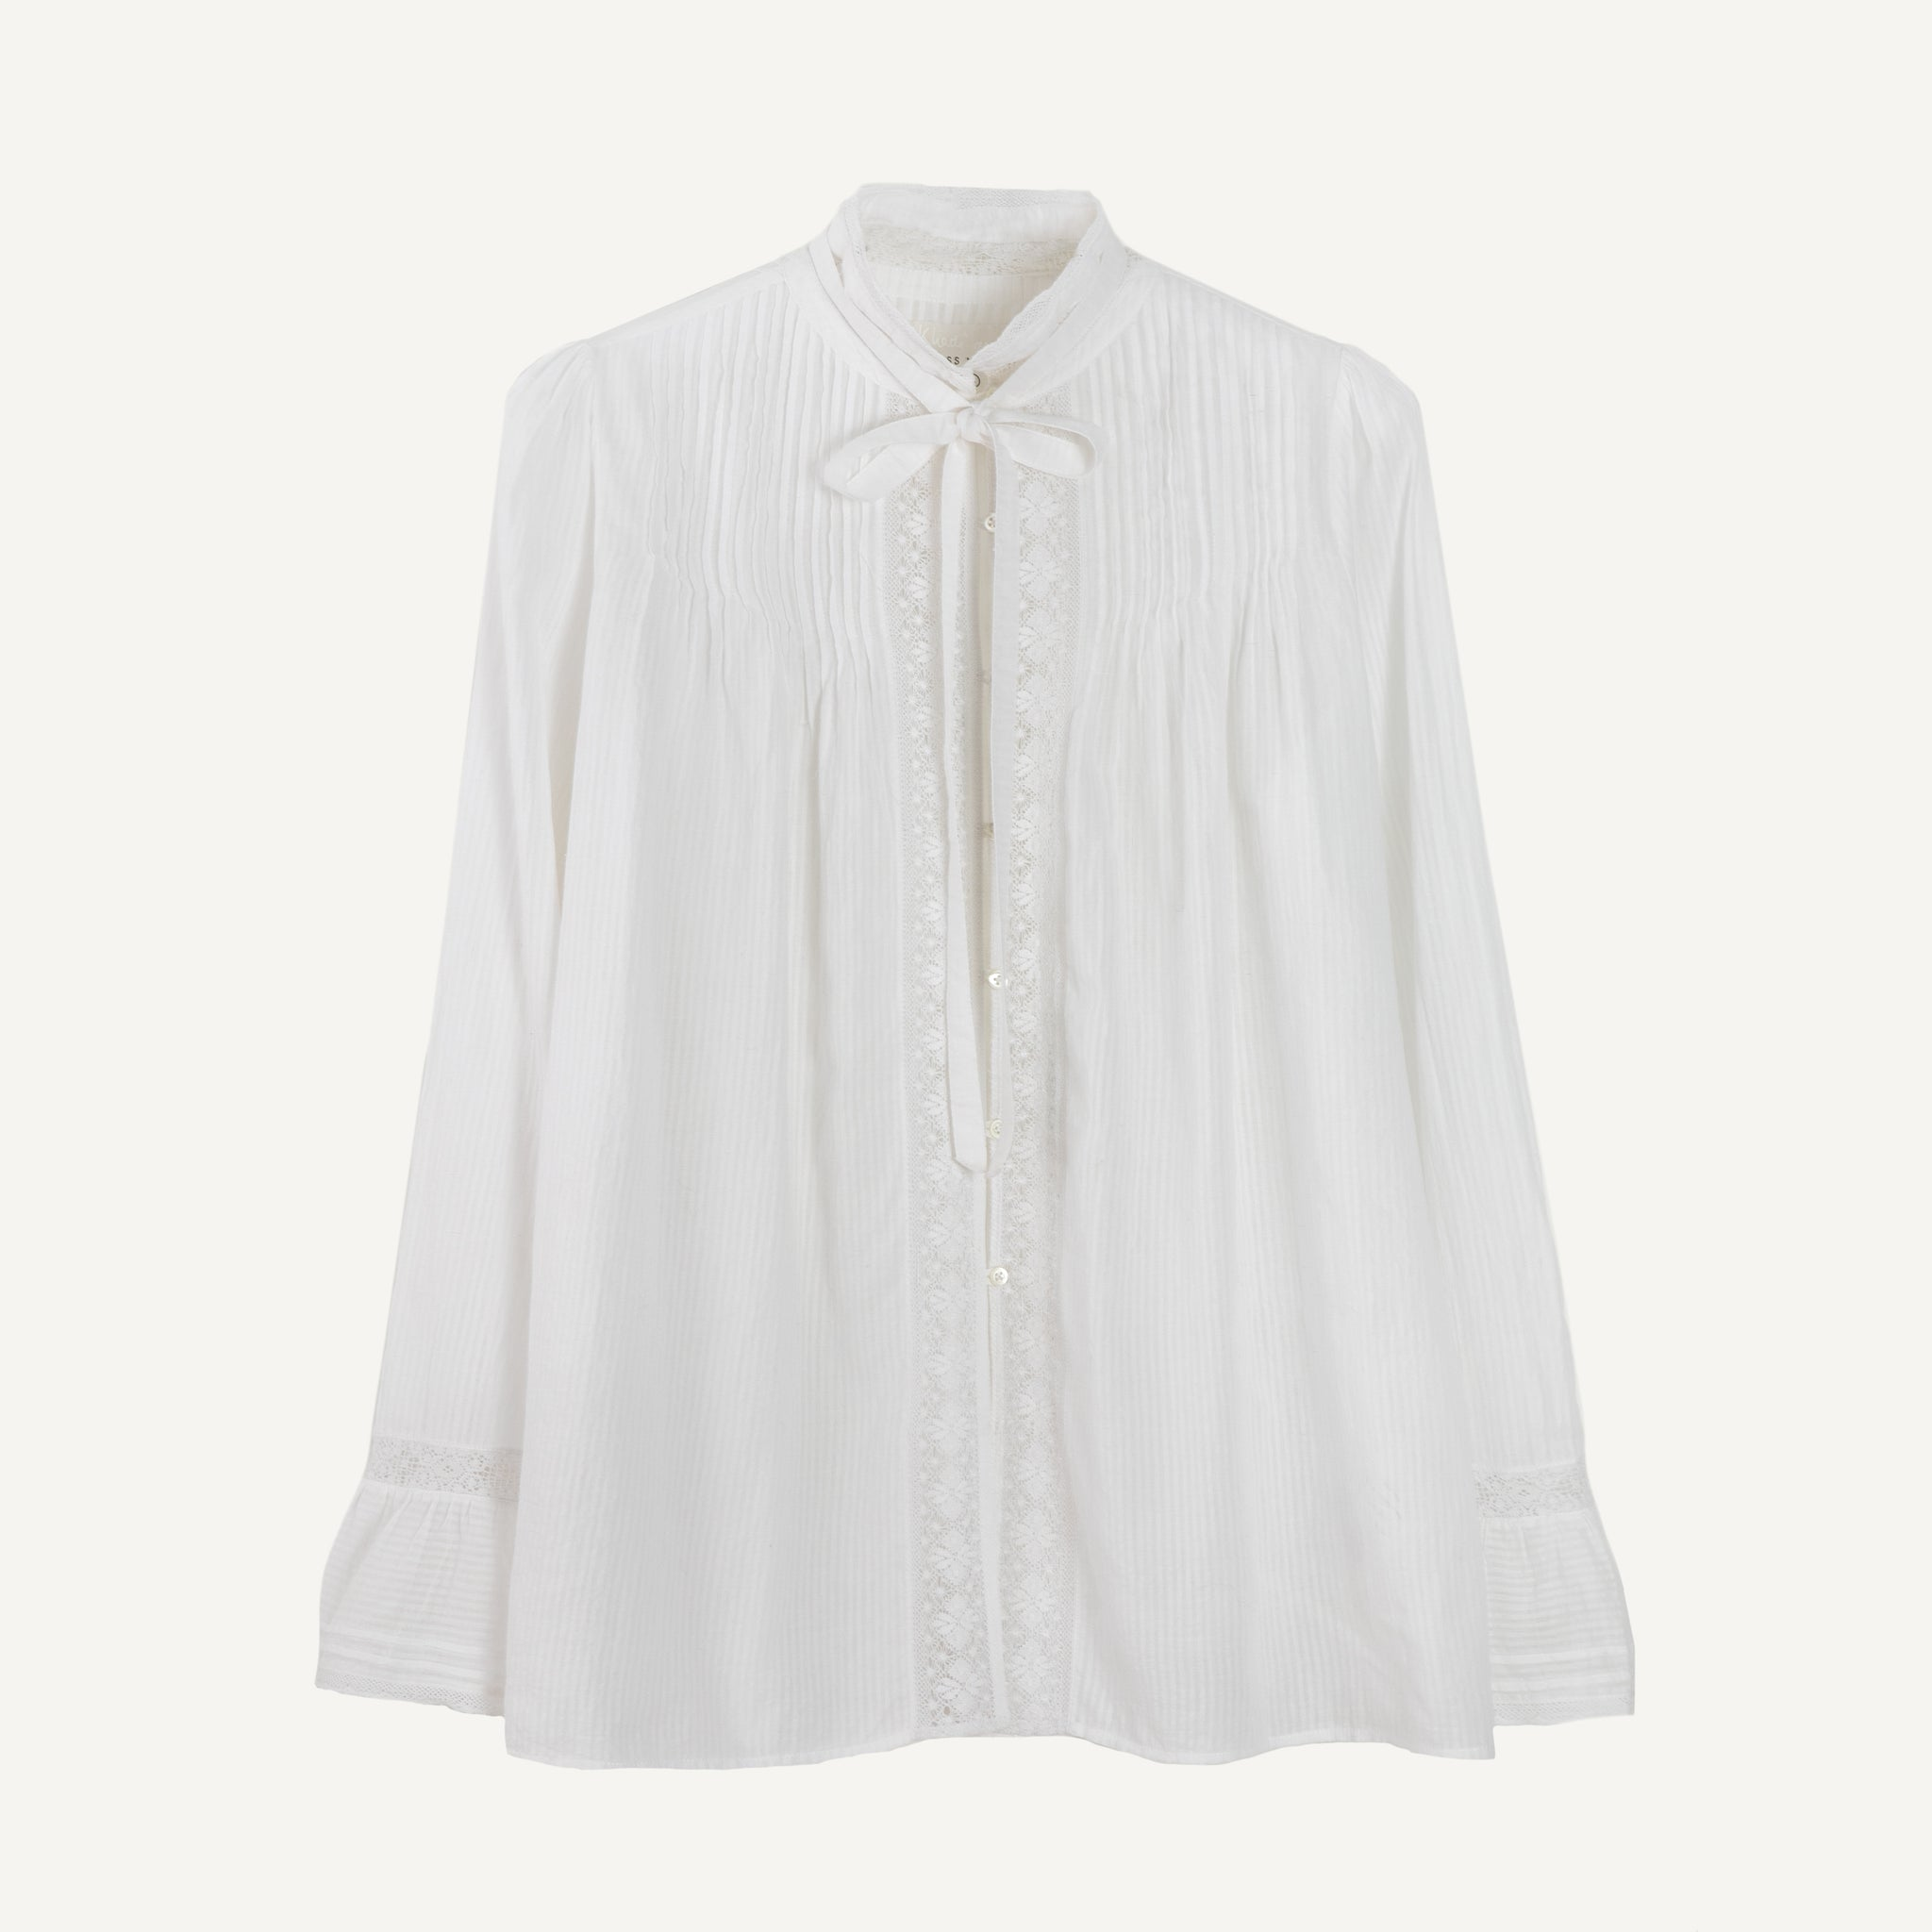 KHADI & CO LACE BLOUSE